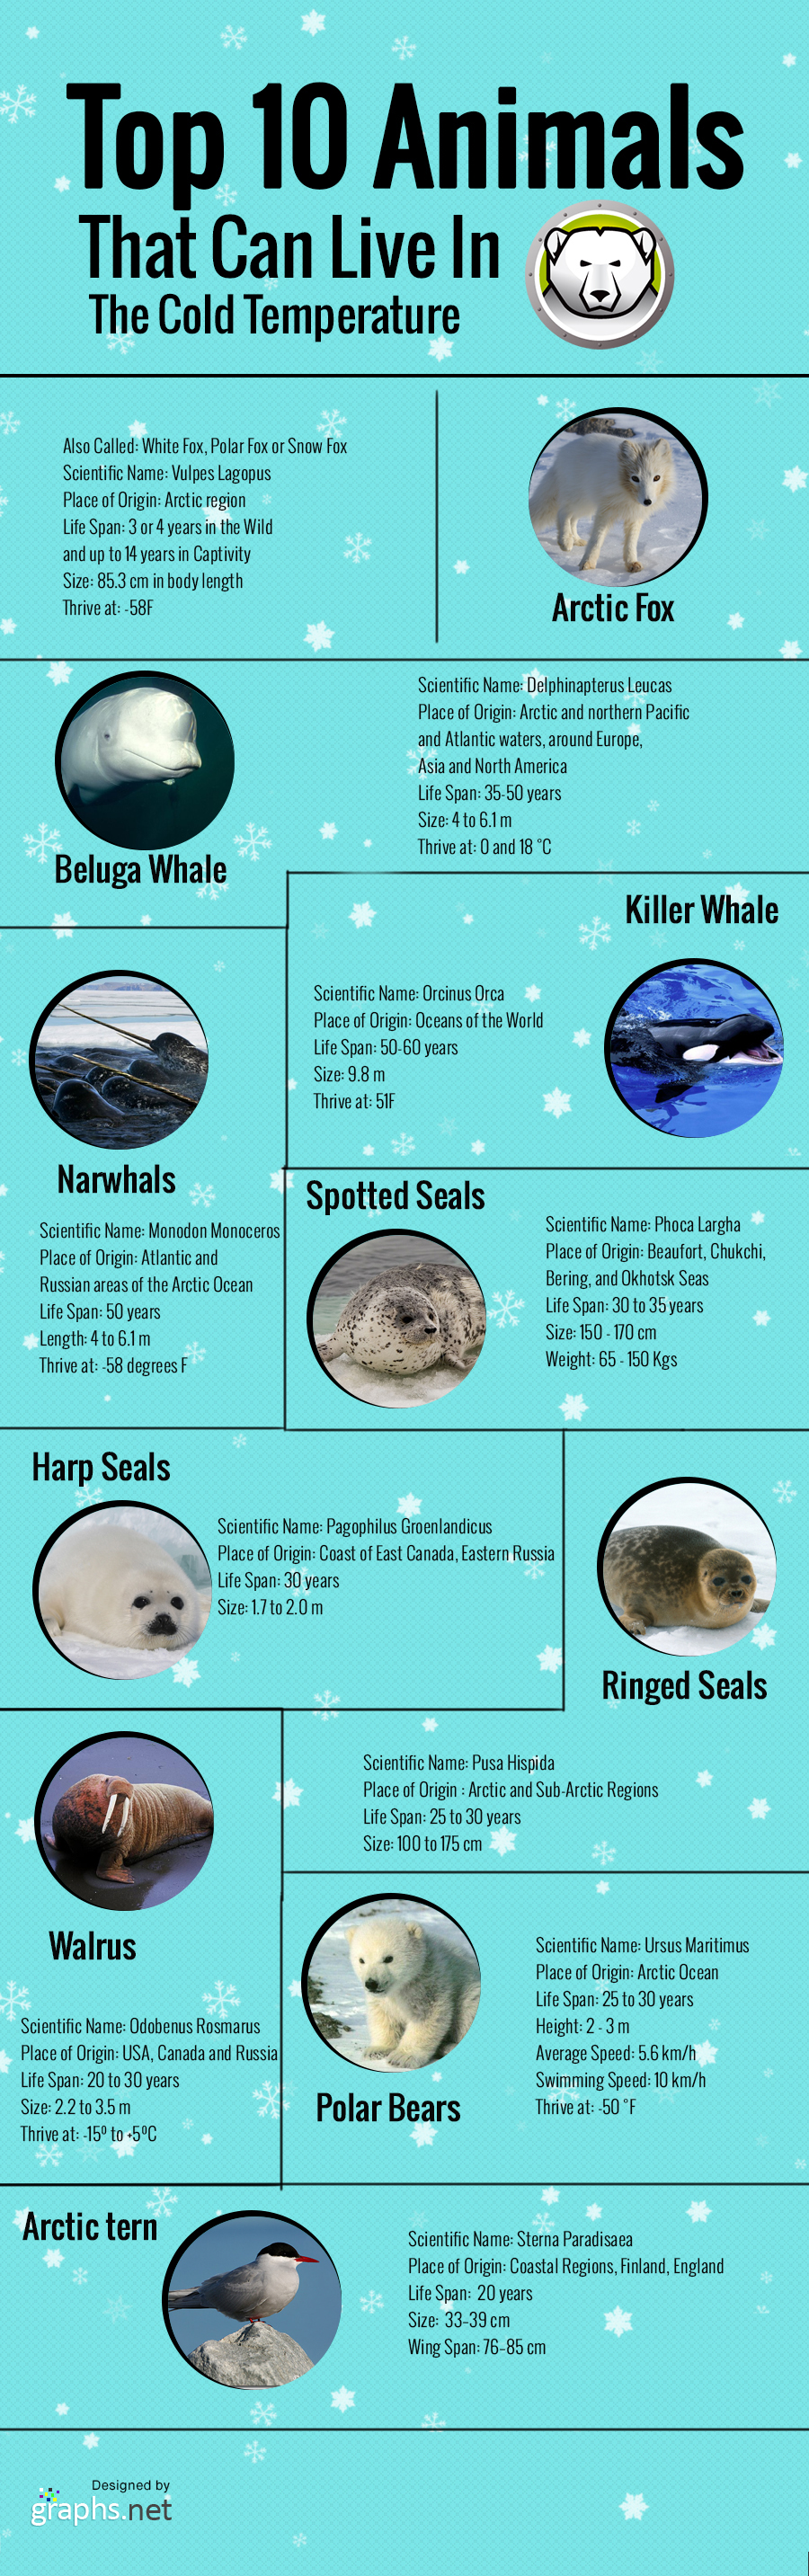 Top 10 Animals That an Live in the Cold Temperature